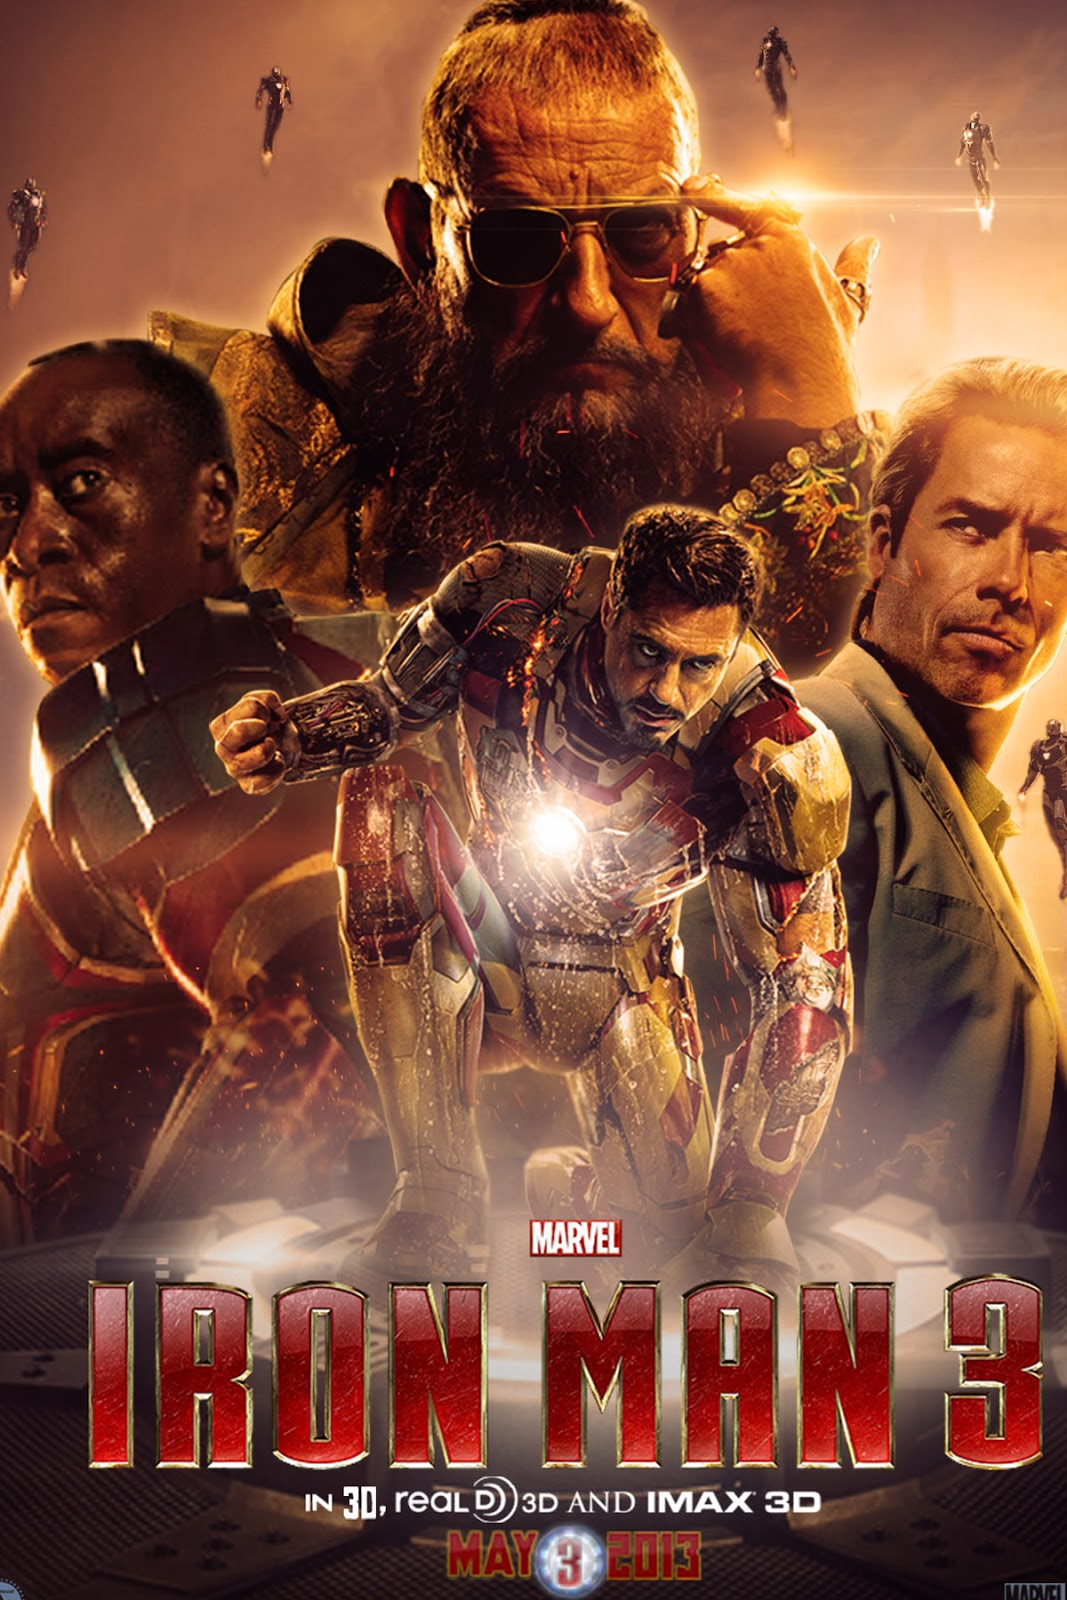 Iron Man 3 2013 HD wallpapers 1080p